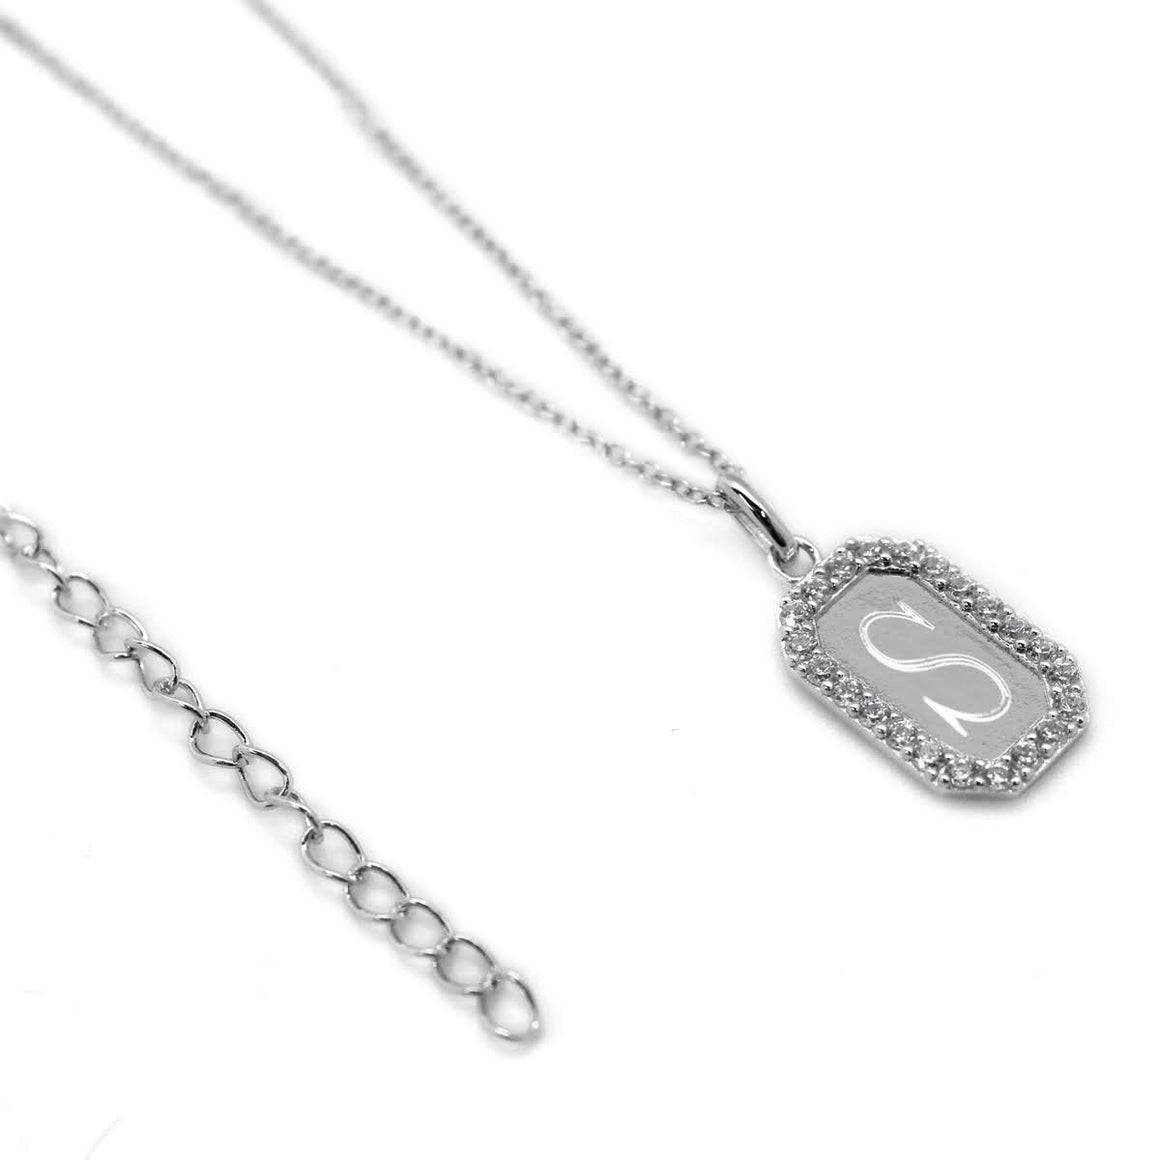 STERLING SILVER DESIGNER INSPIRED CLEAR CZ ENGRAVABLE NECKLACE - Atlanta Jewelers Supply